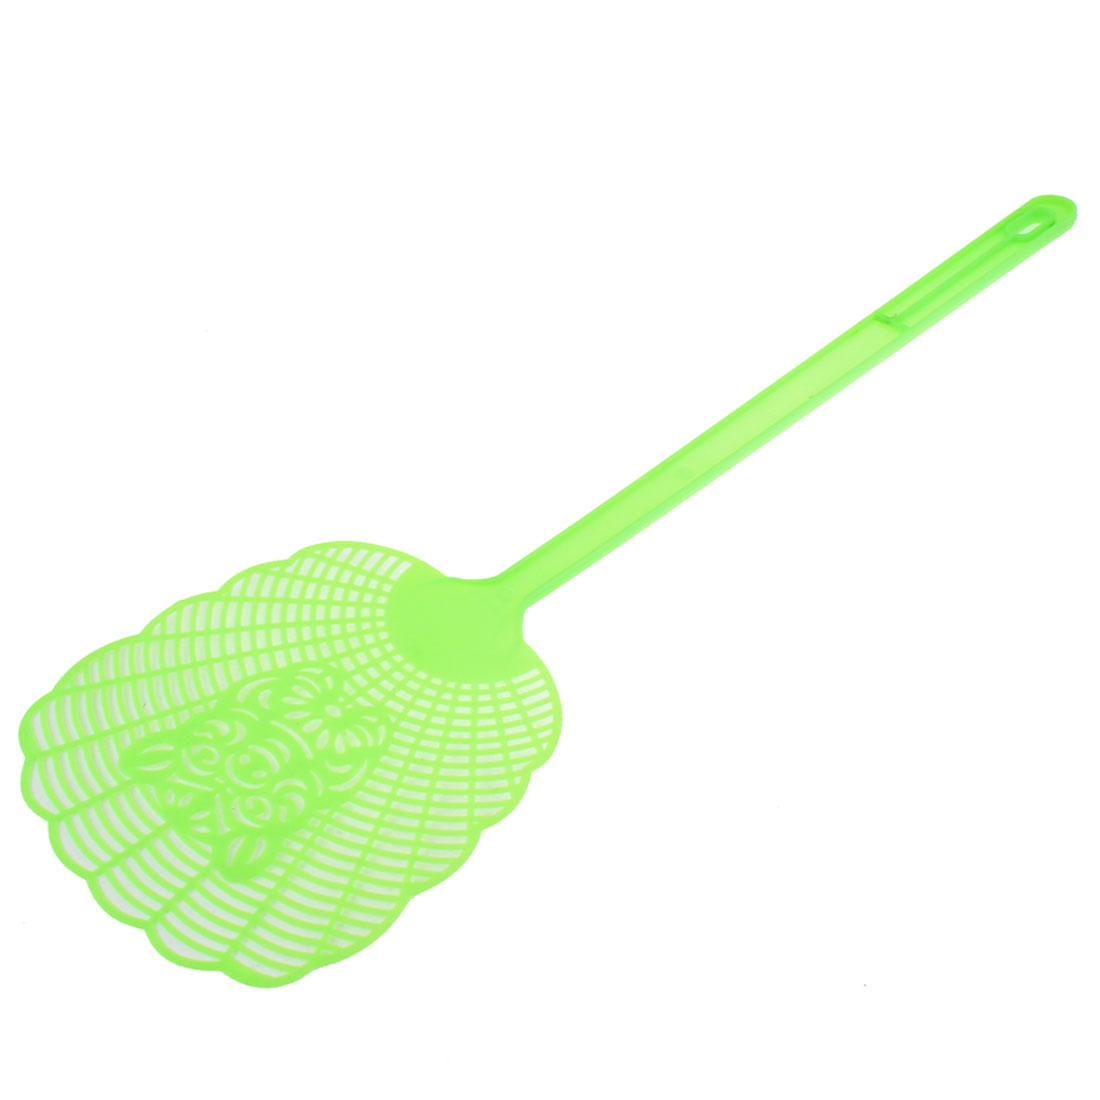 Household Plastic Mosquito Cockroach Insects Fly Swatter 48cm Green